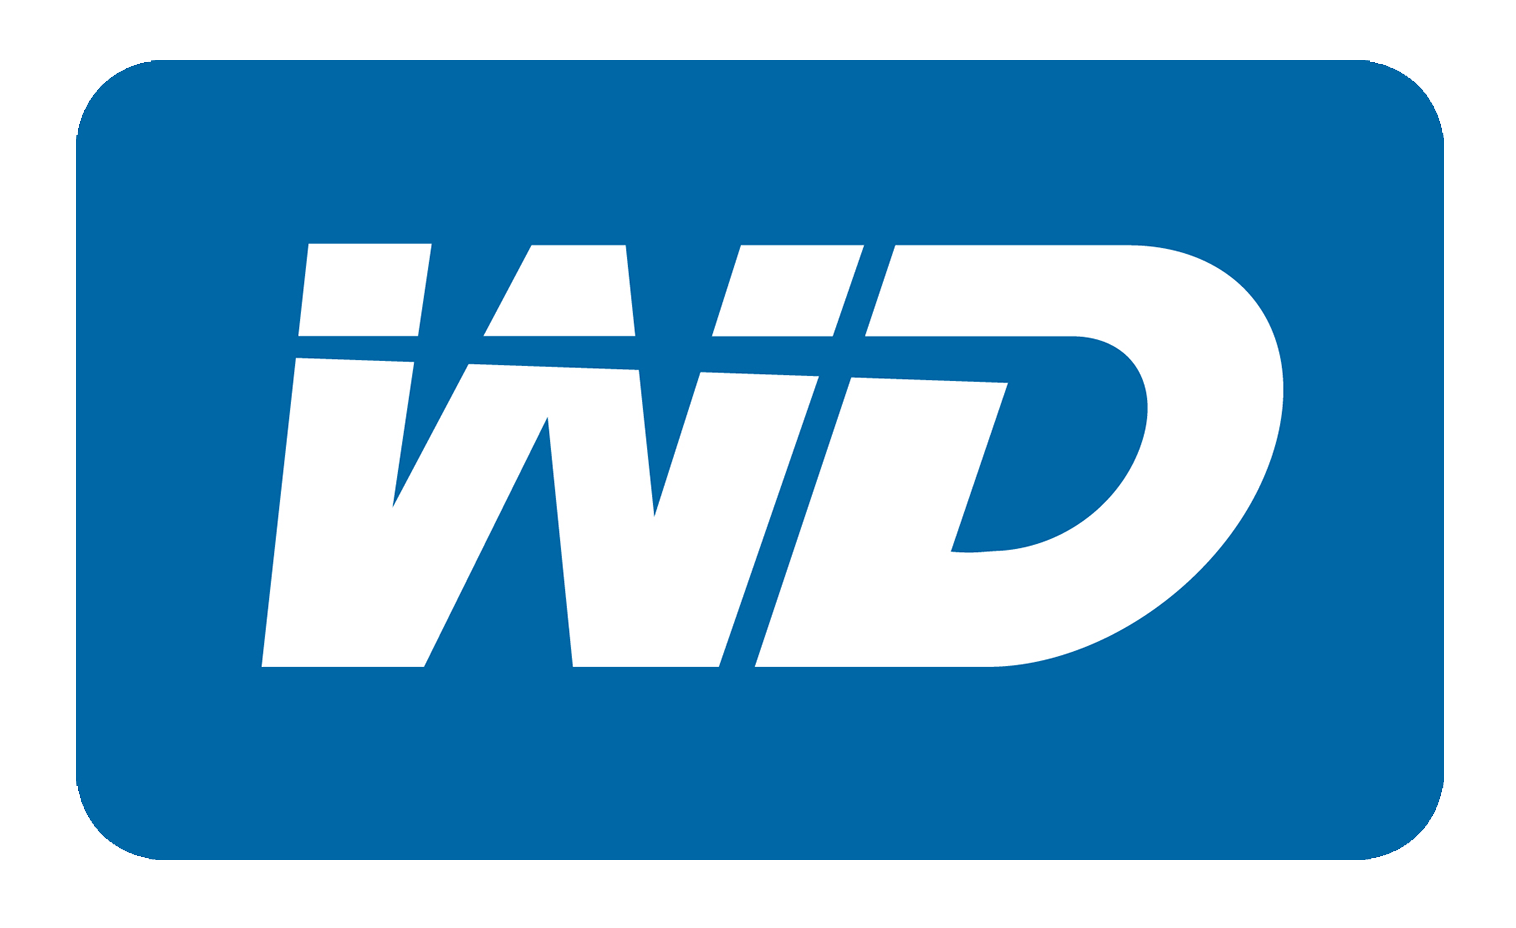 Western Digital Corporation (NASDAQ:WDC) Rating Changes as of May 2, 2018